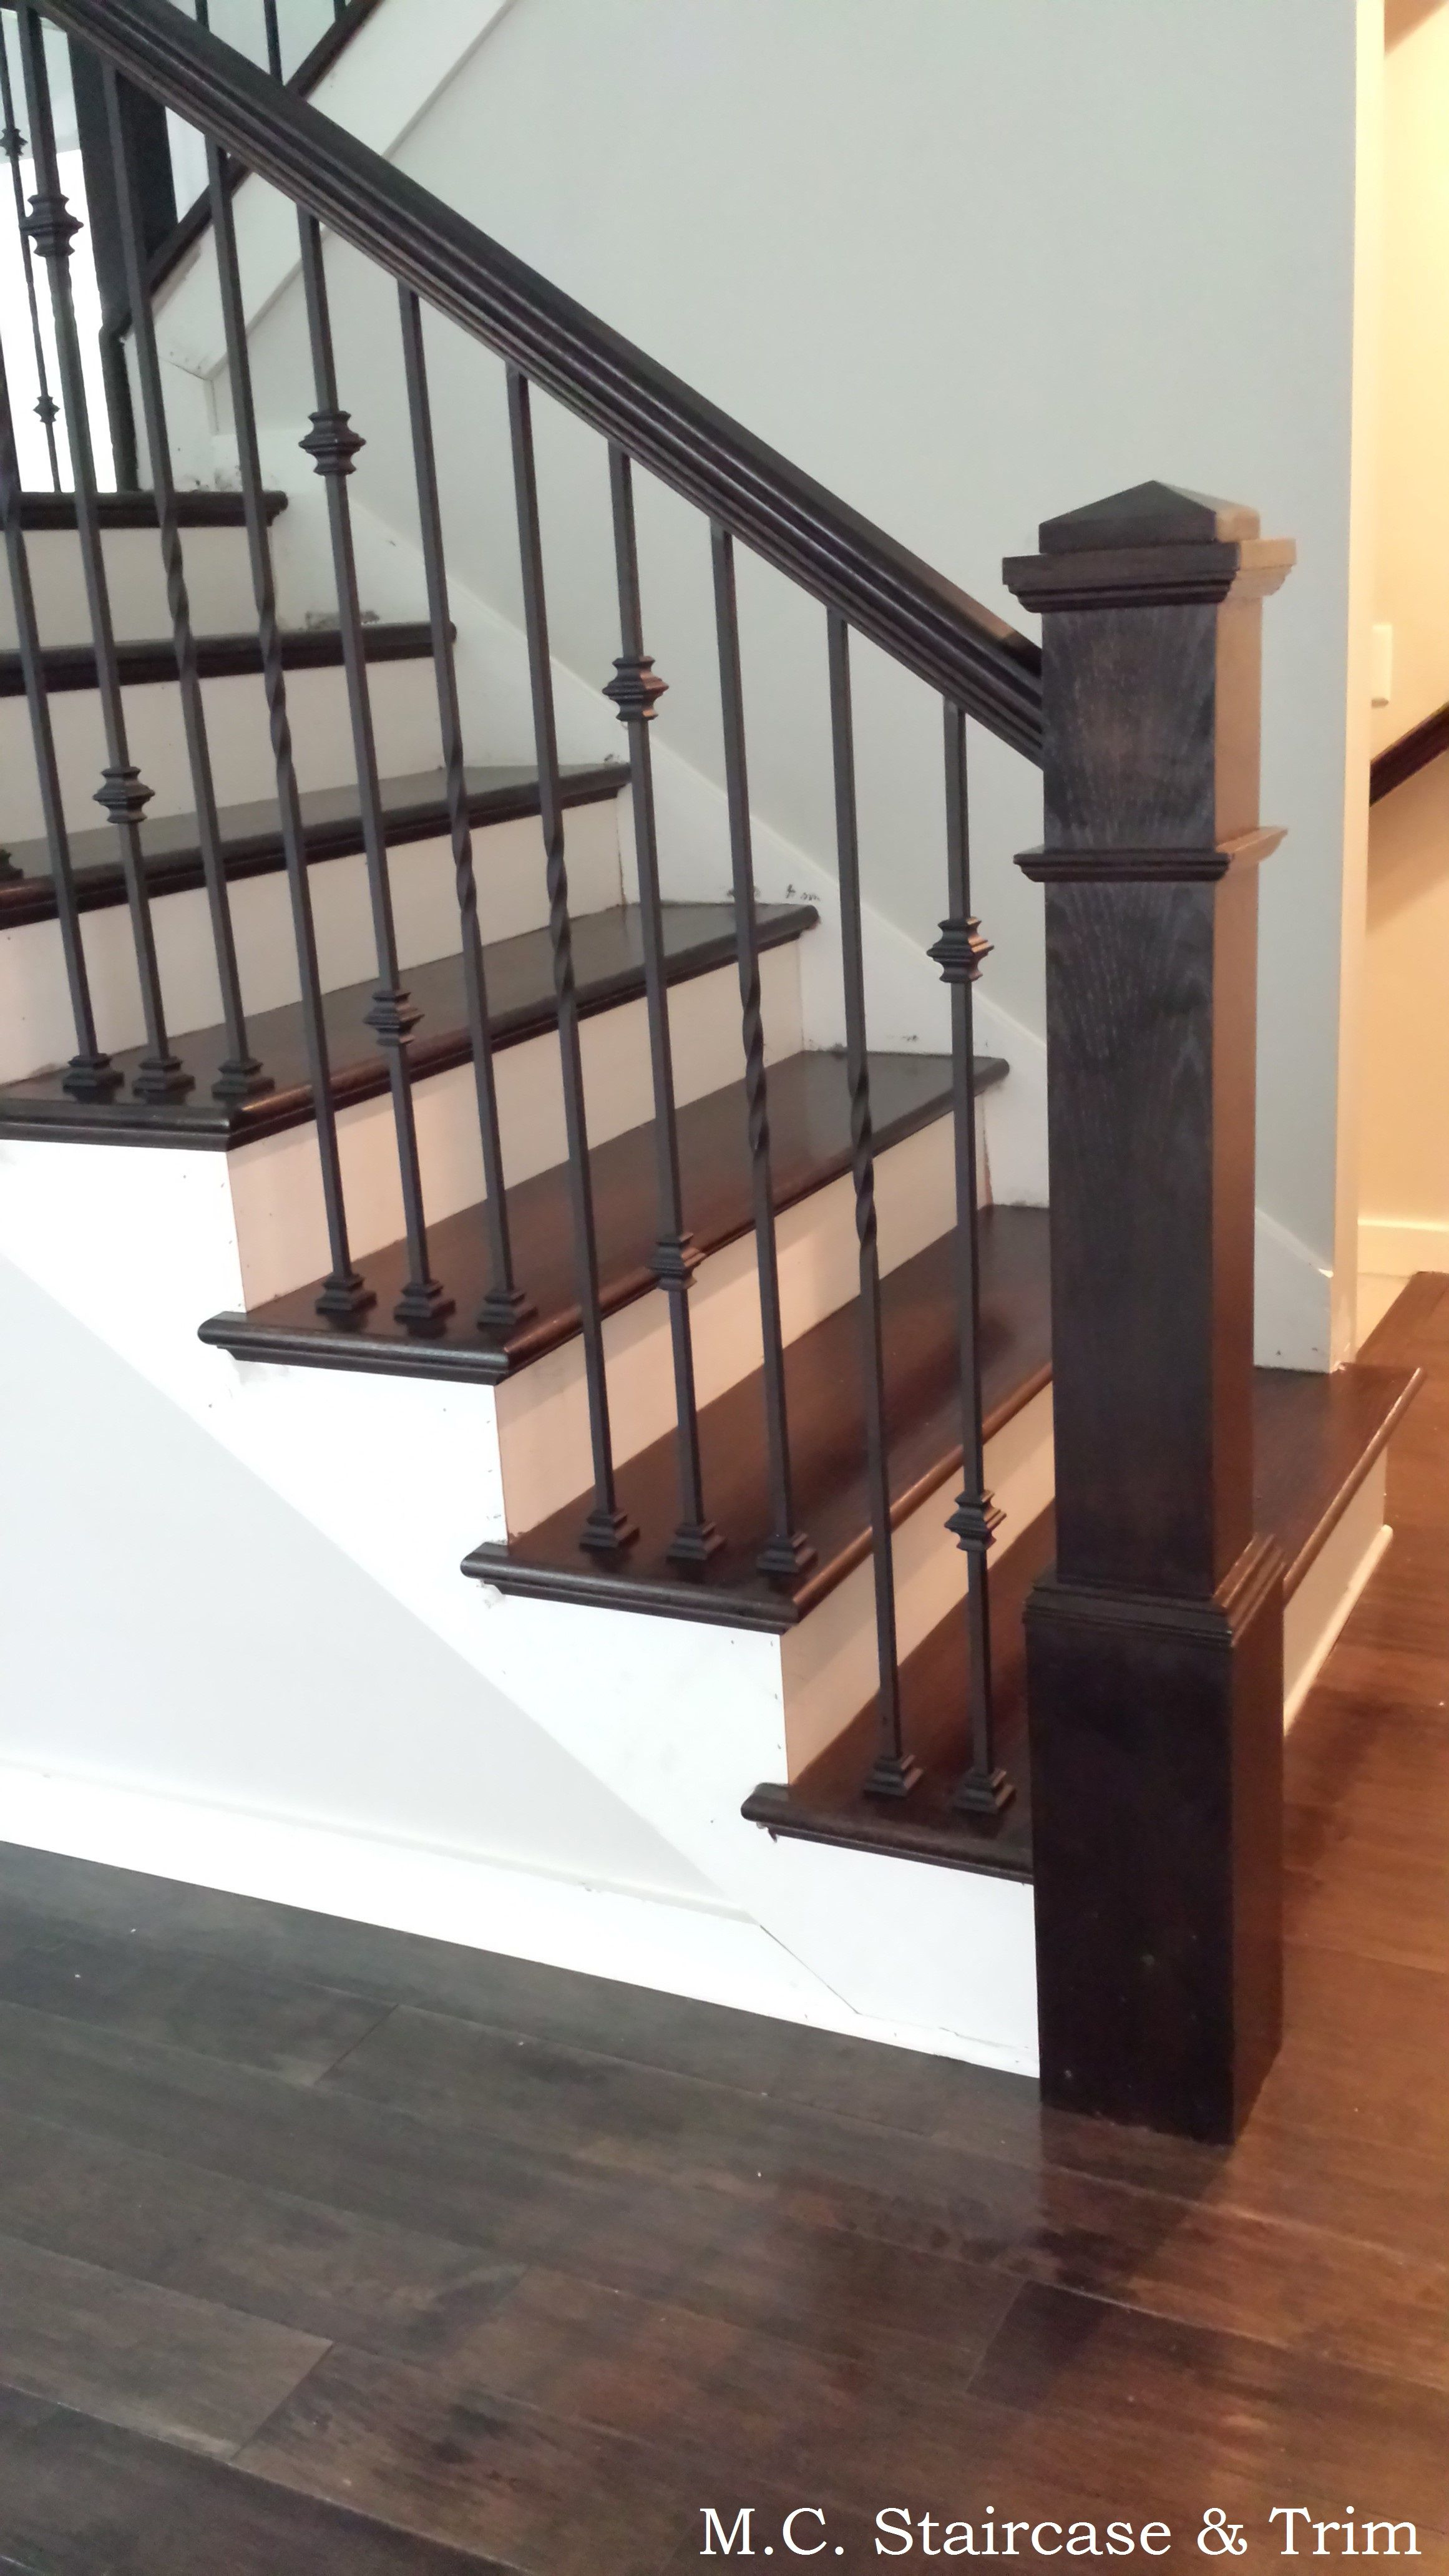 Staircase Remodel From M C Staircase Trim Removal Of Carpet Wooden Railing And Wooden